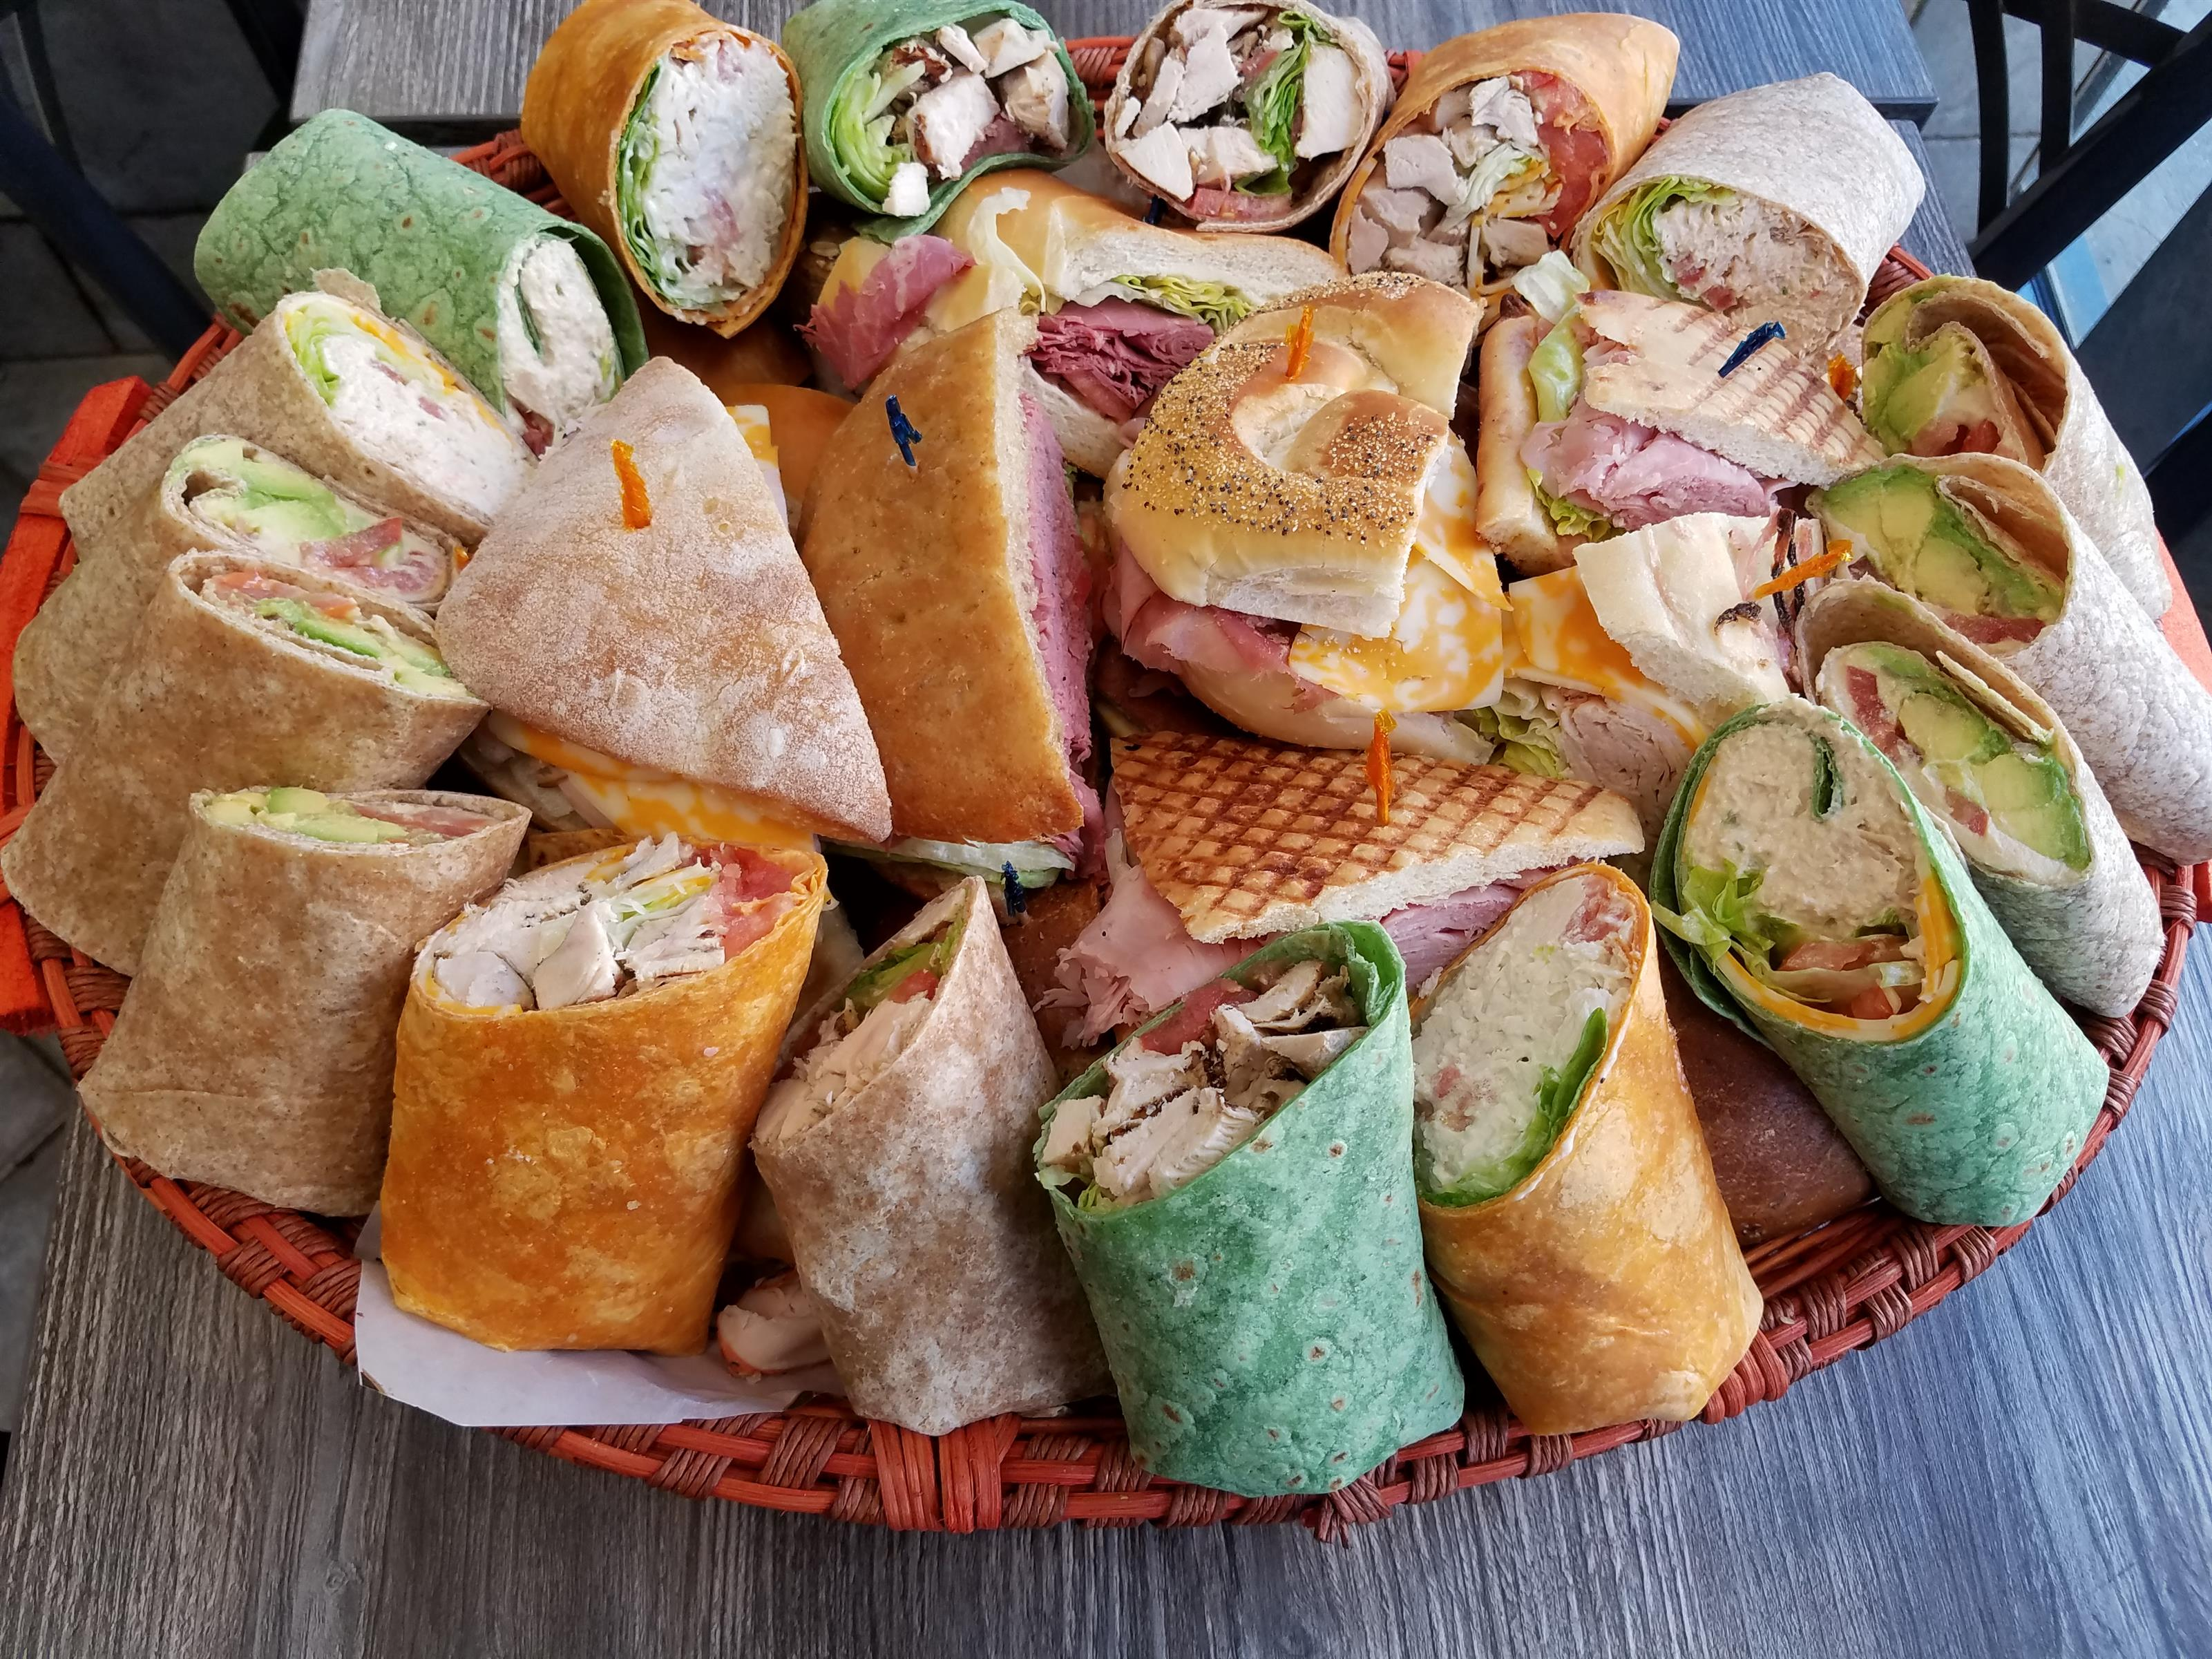 Assorted sandwiches and wraps on a tray